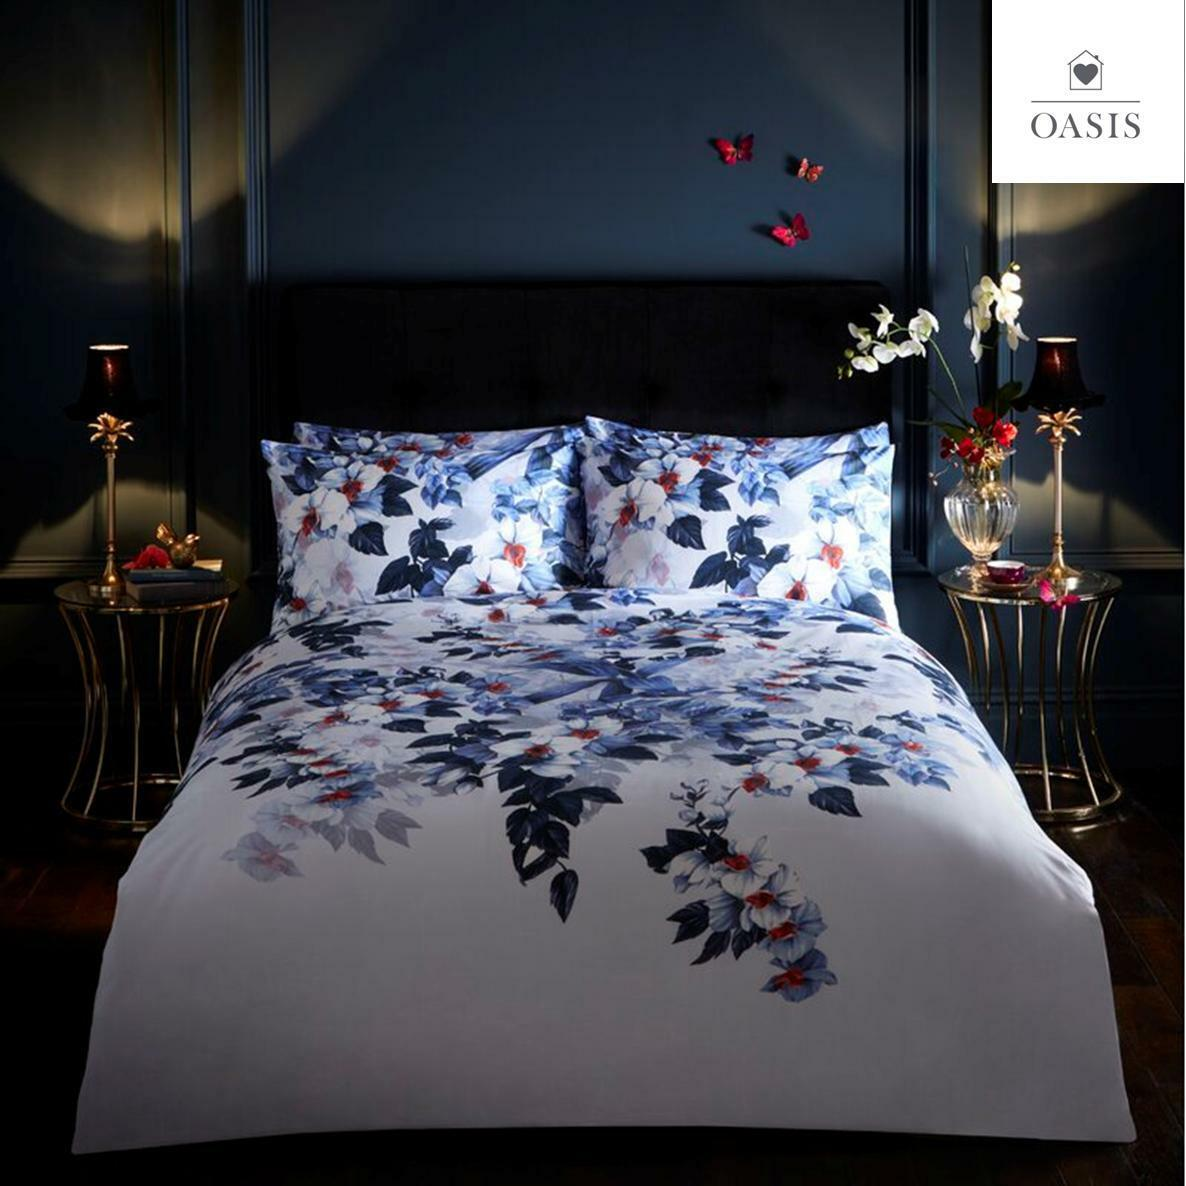 Blue And White Bedding Sets.Details About Oasis Exotic Vibrant Navy Blue White Floral Design Duvet Cover Bedding Sets